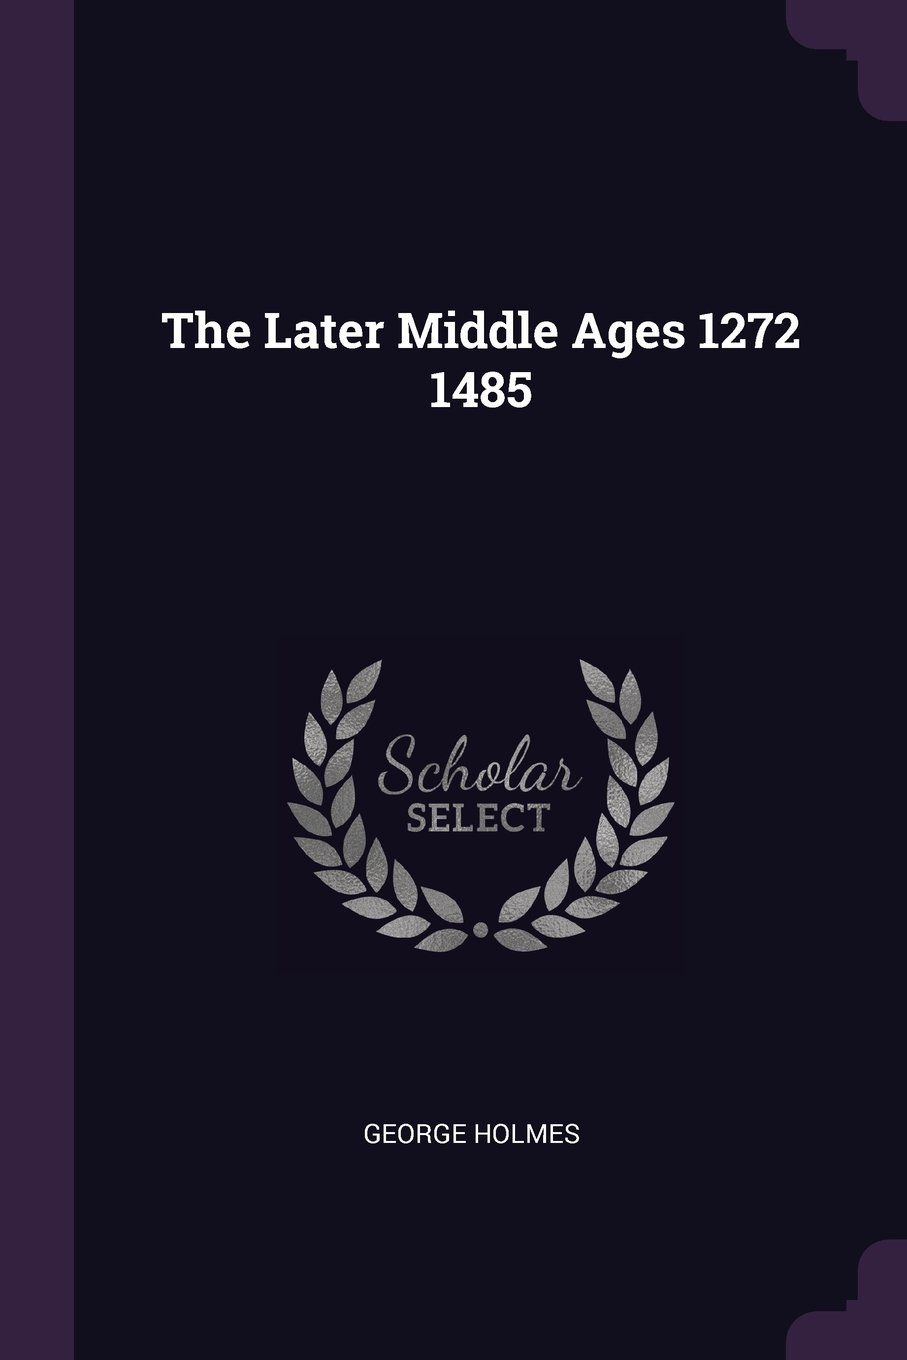 Amazon.com: The Later Middle Ages 1272 1485 (9781379056058): George Holmes:  Books